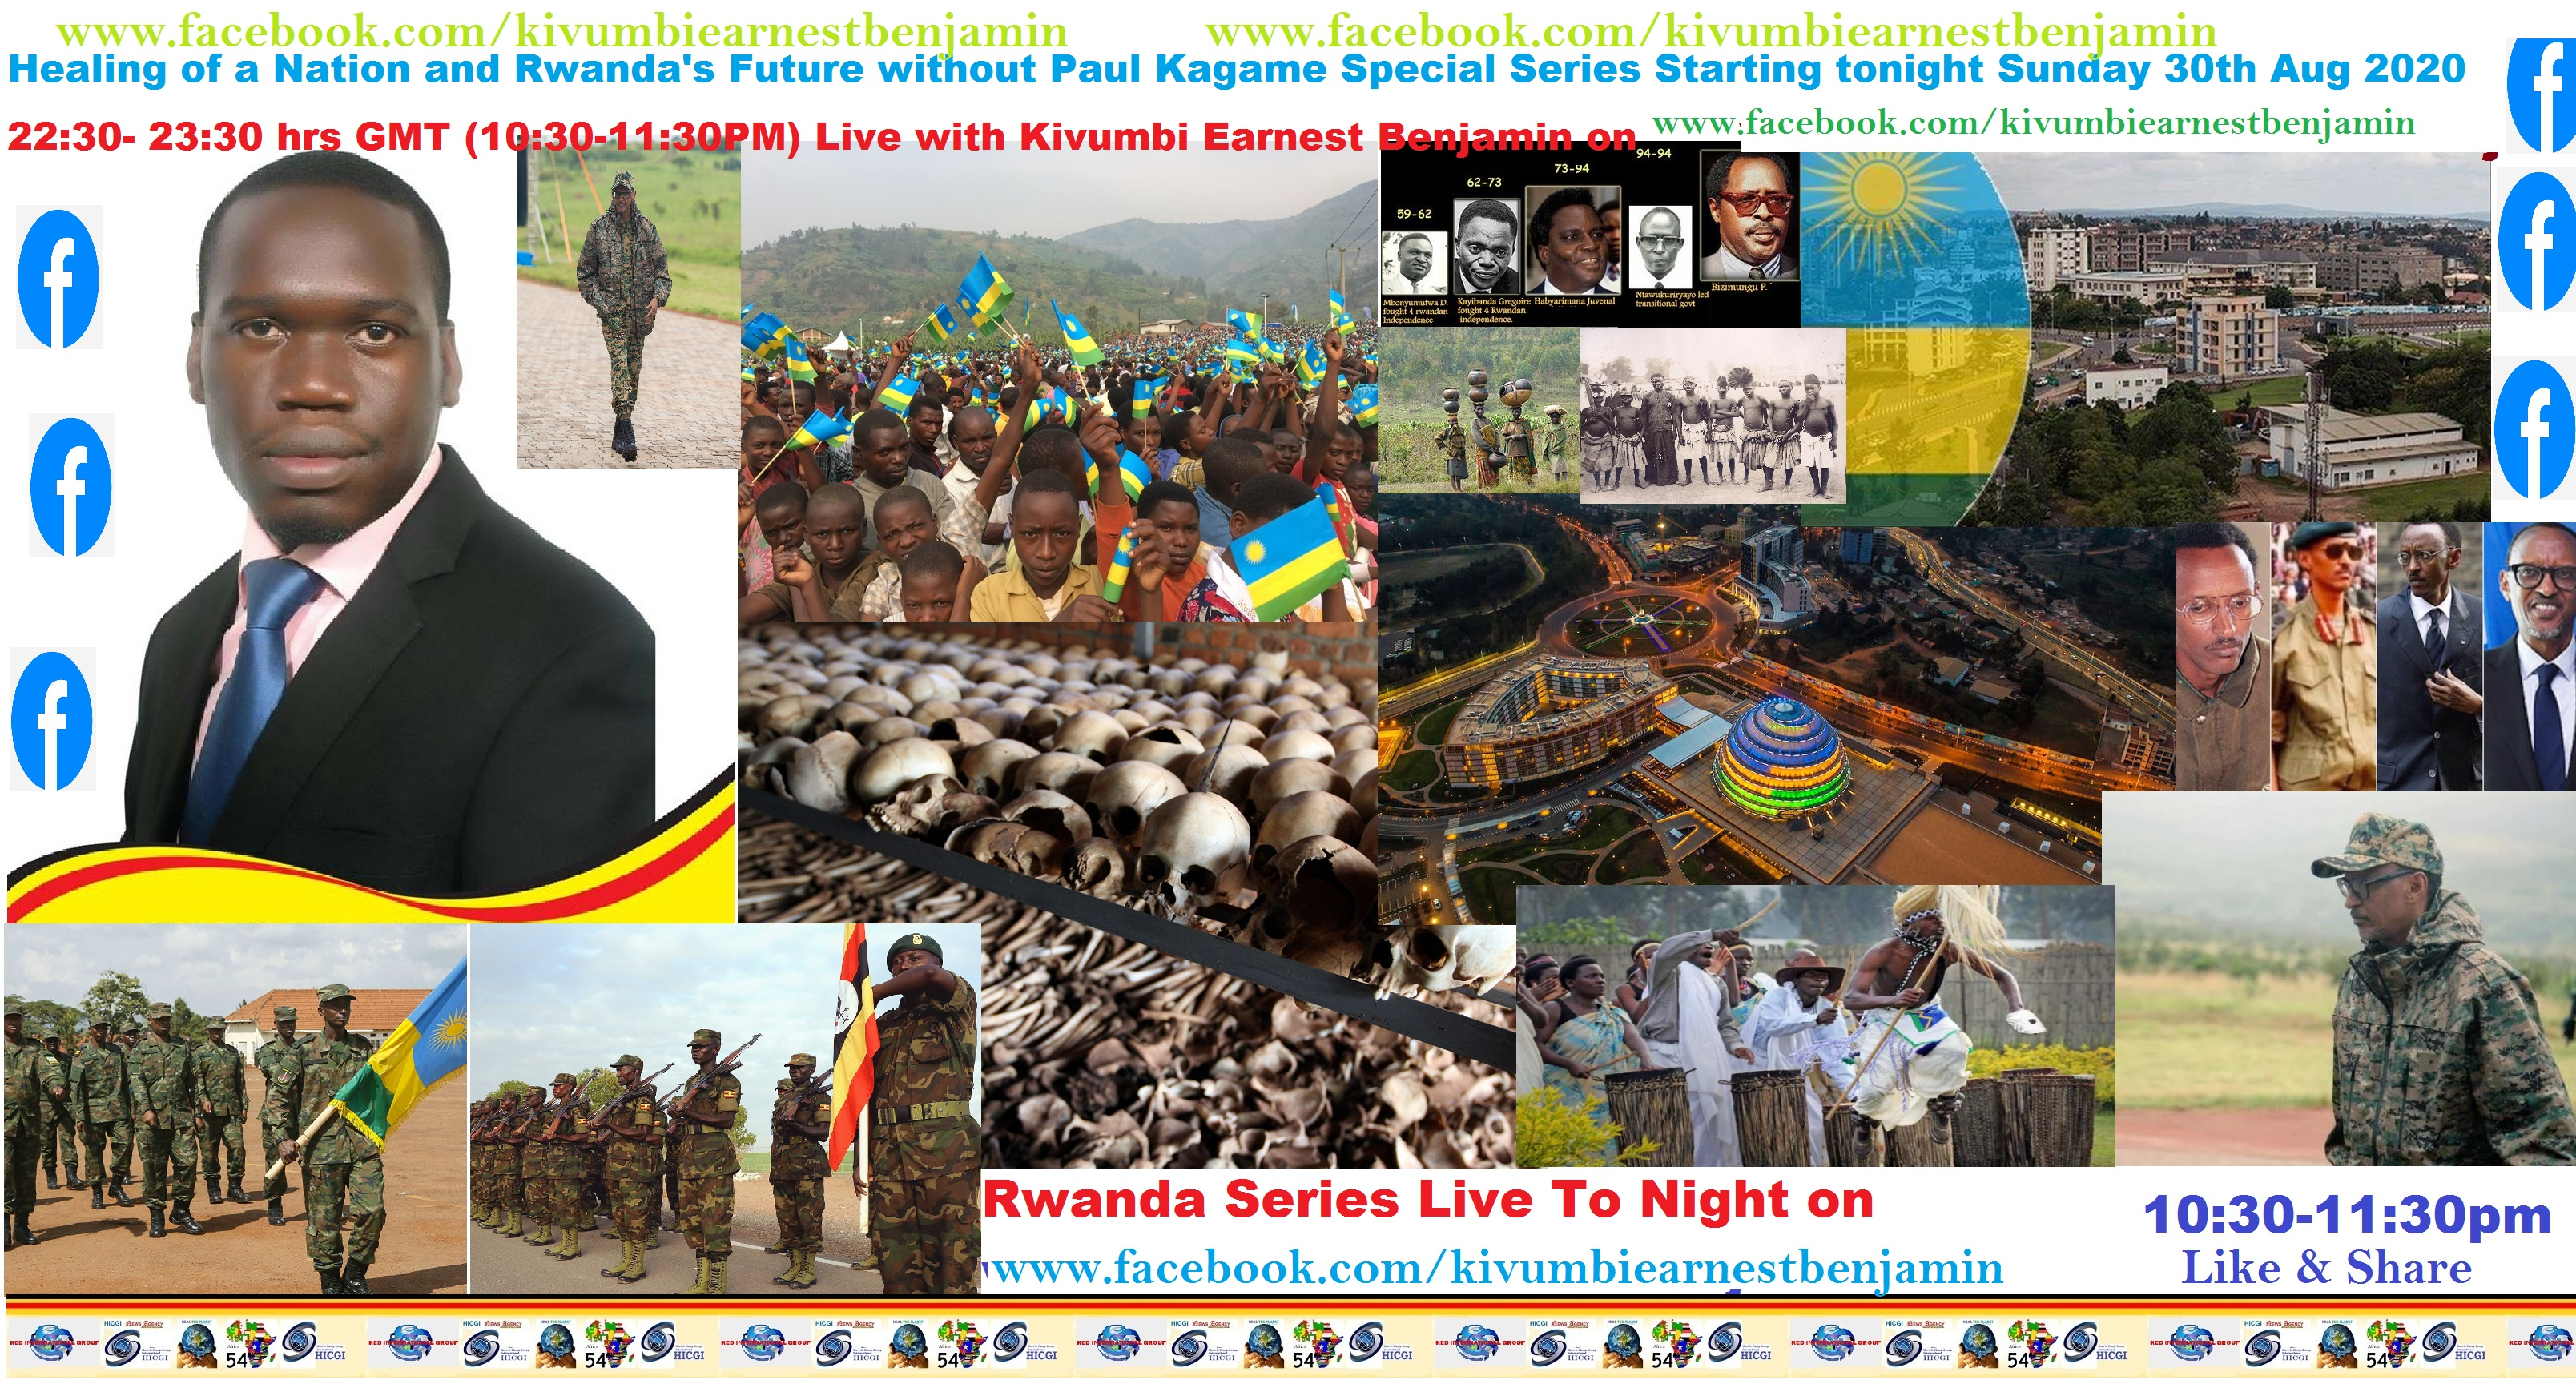 Facebook Live: Healing of a Nation & Rwanda's Future without Paul Kagame. Starting tonight Sun 30th Aug 2020 at 22:30-23:30hrs GMT (10:30-11:30PM) Live with Kivumbi